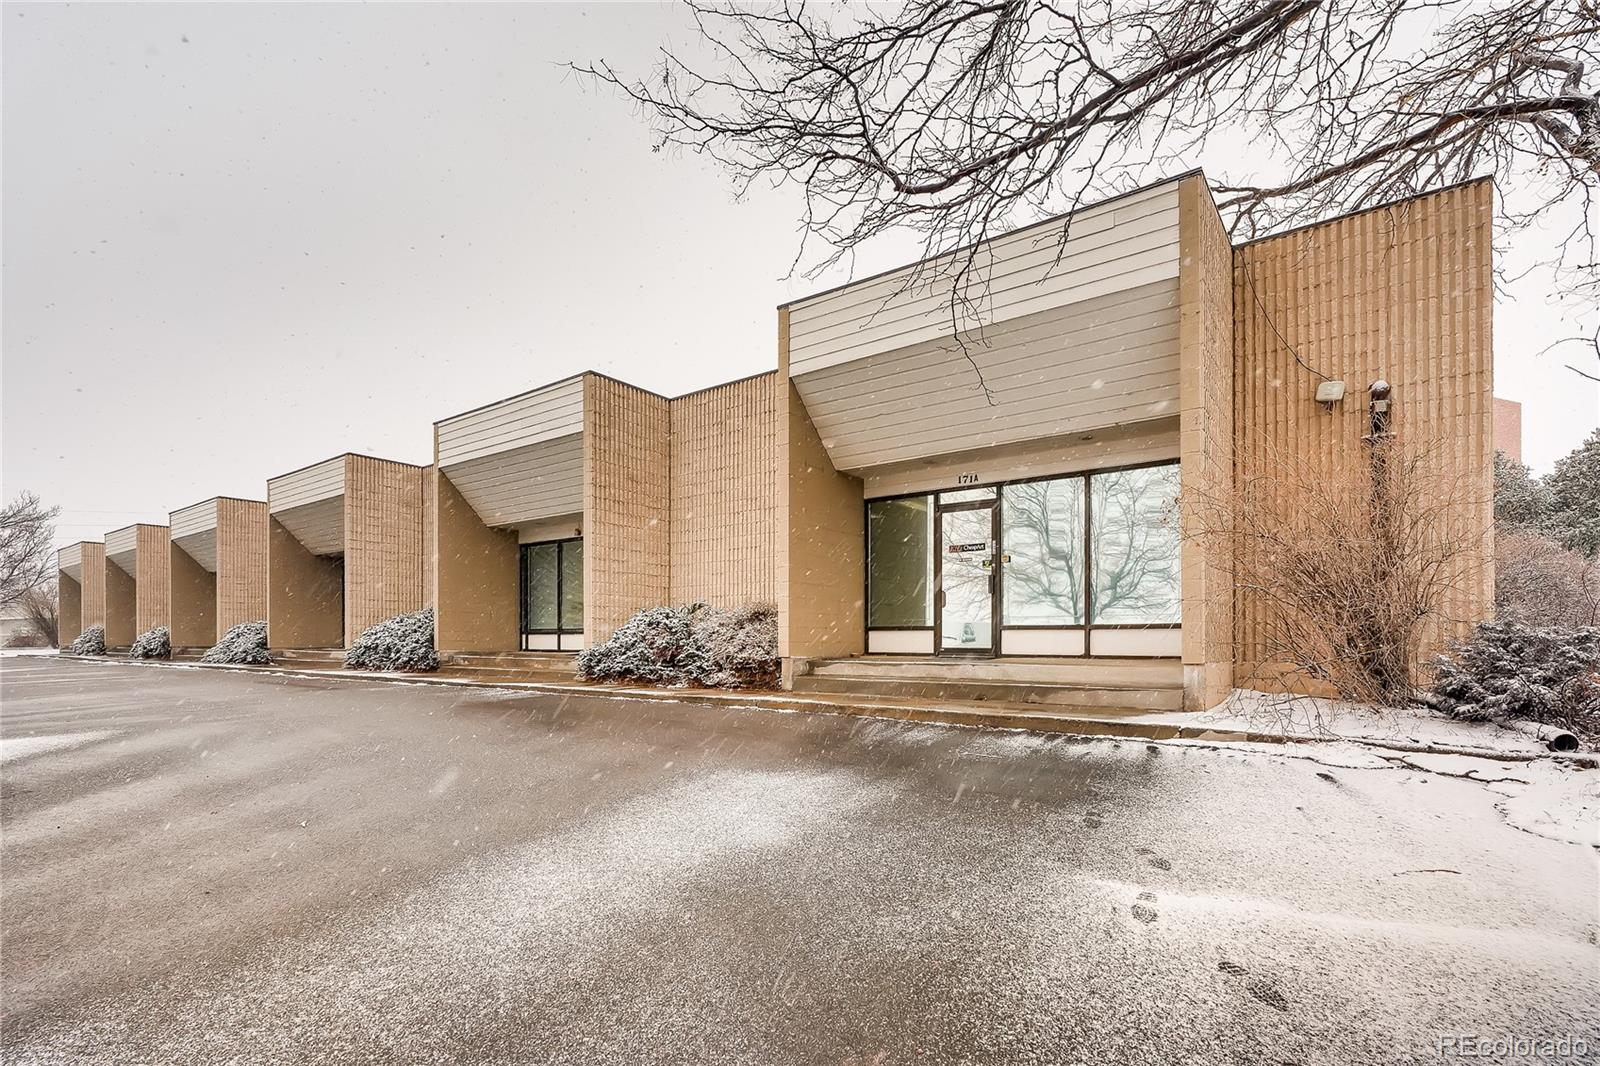 171 S Van Gordon Street #A, Lakewood, CO 80228 - Lakewood, CO real estate listing